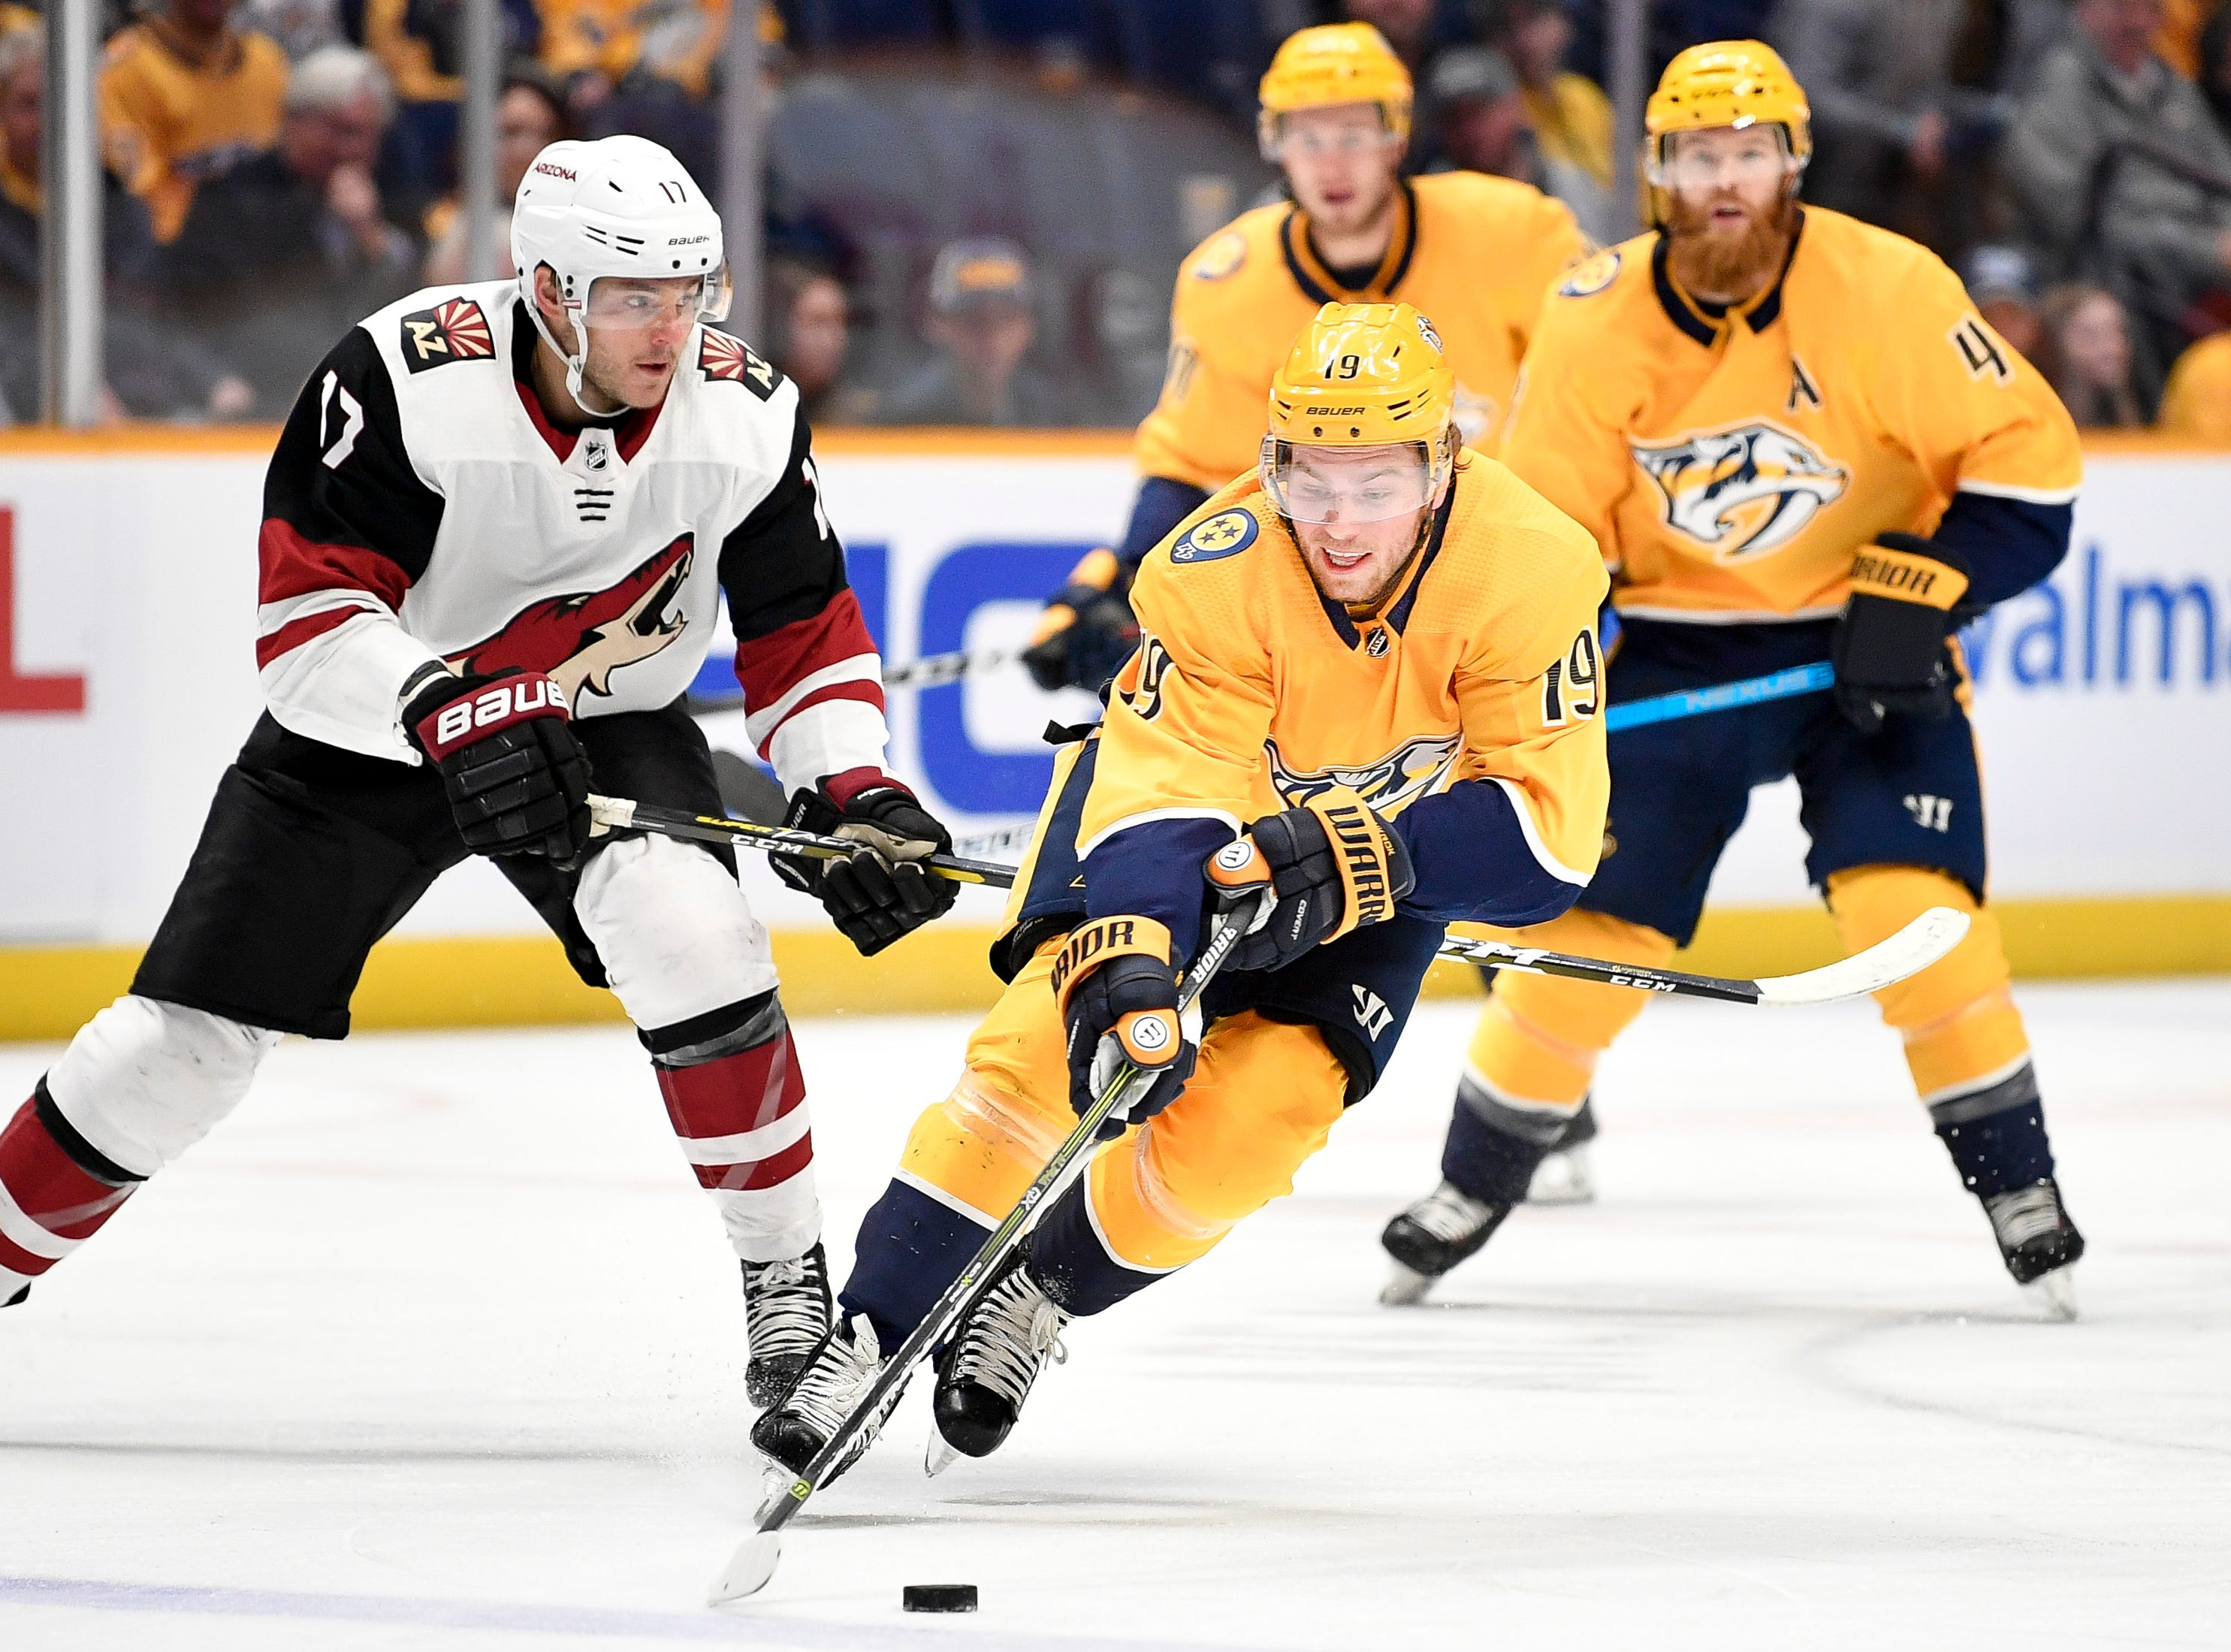 Nashville Predators center Calle Jarnkrok (19) advanc es past Arizona Coyotes center Alex Galchenyuk (17) during the first period at Bridgestone Arena in Nashville, Tenn., Tuesday, Feb. 5, 2019.